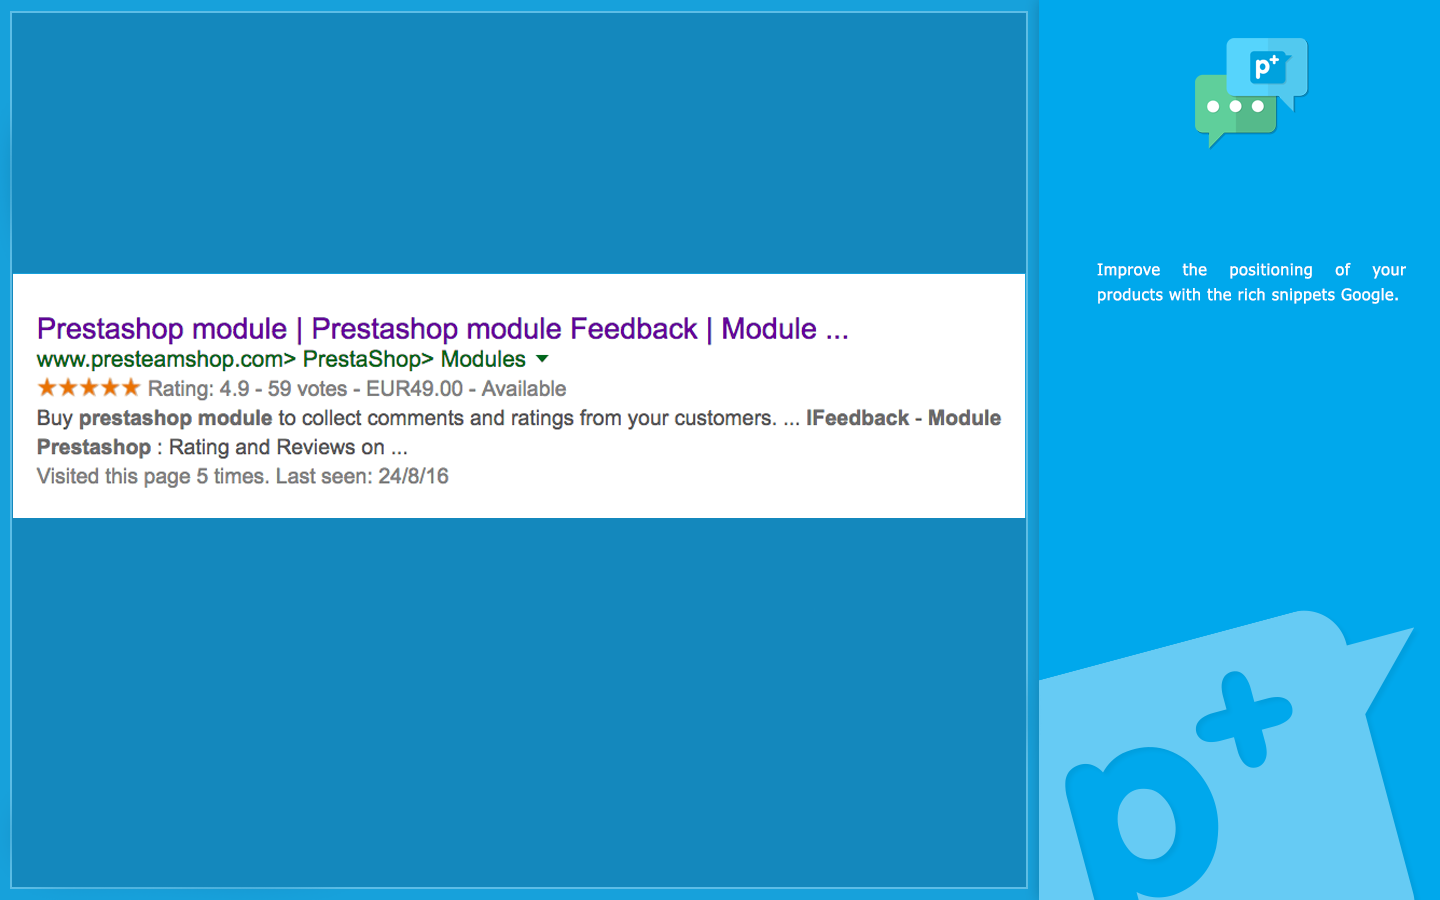 iFeedback - Prestashop Module: Rating and Comments on the shopping experience